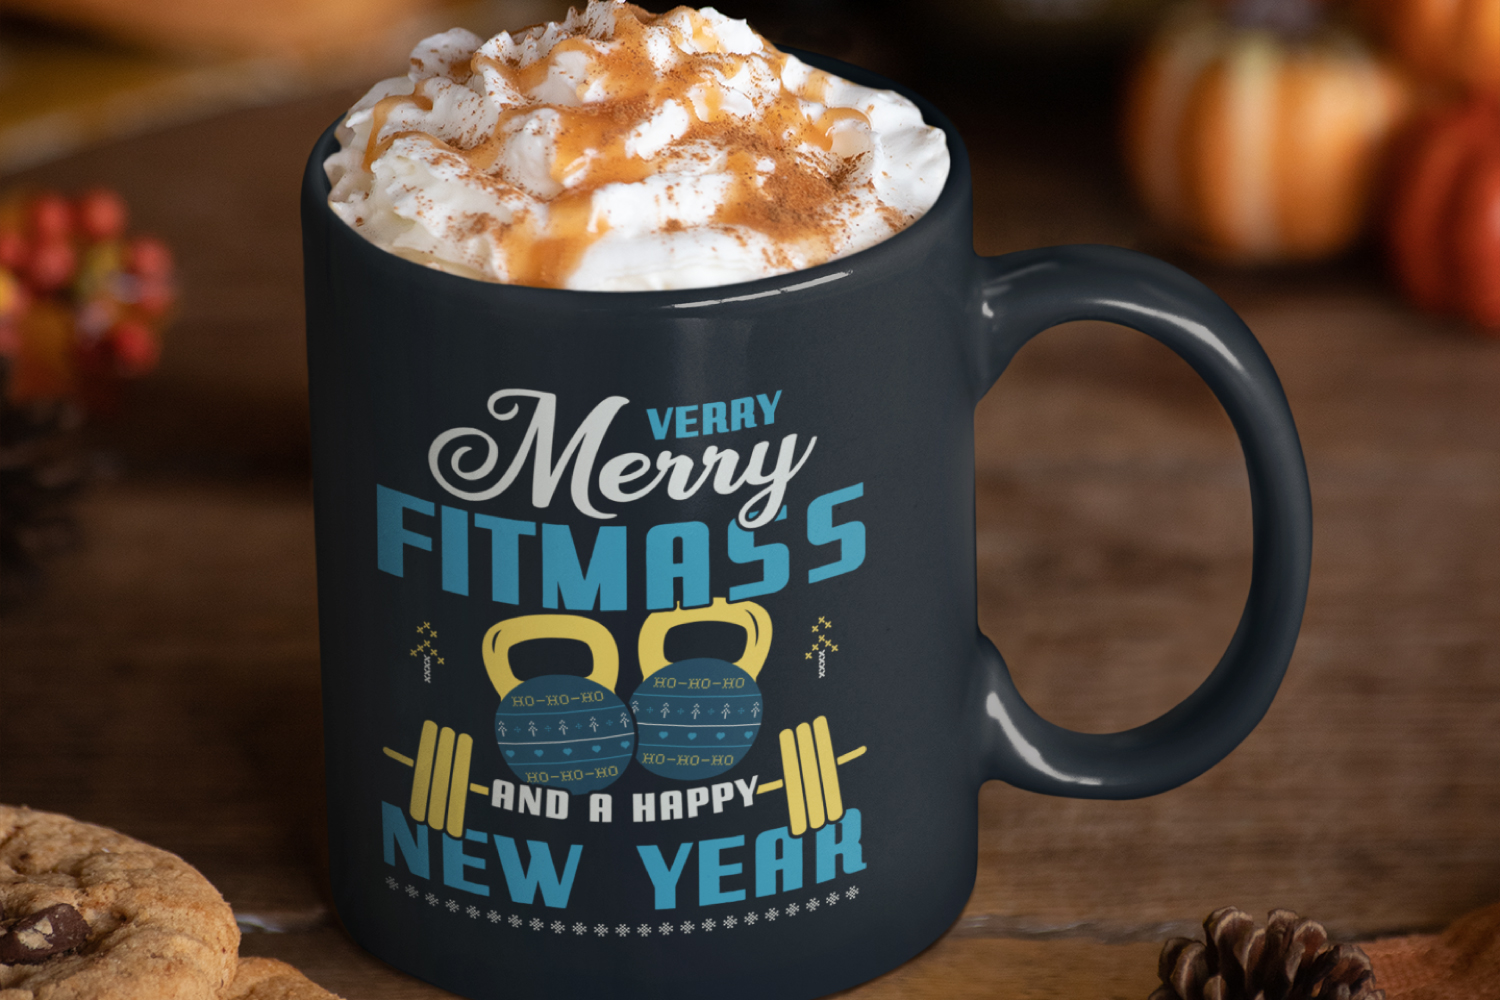 Merry Fitmass, Happy New Year Tshirt, Xmas Design SVG File example image 8